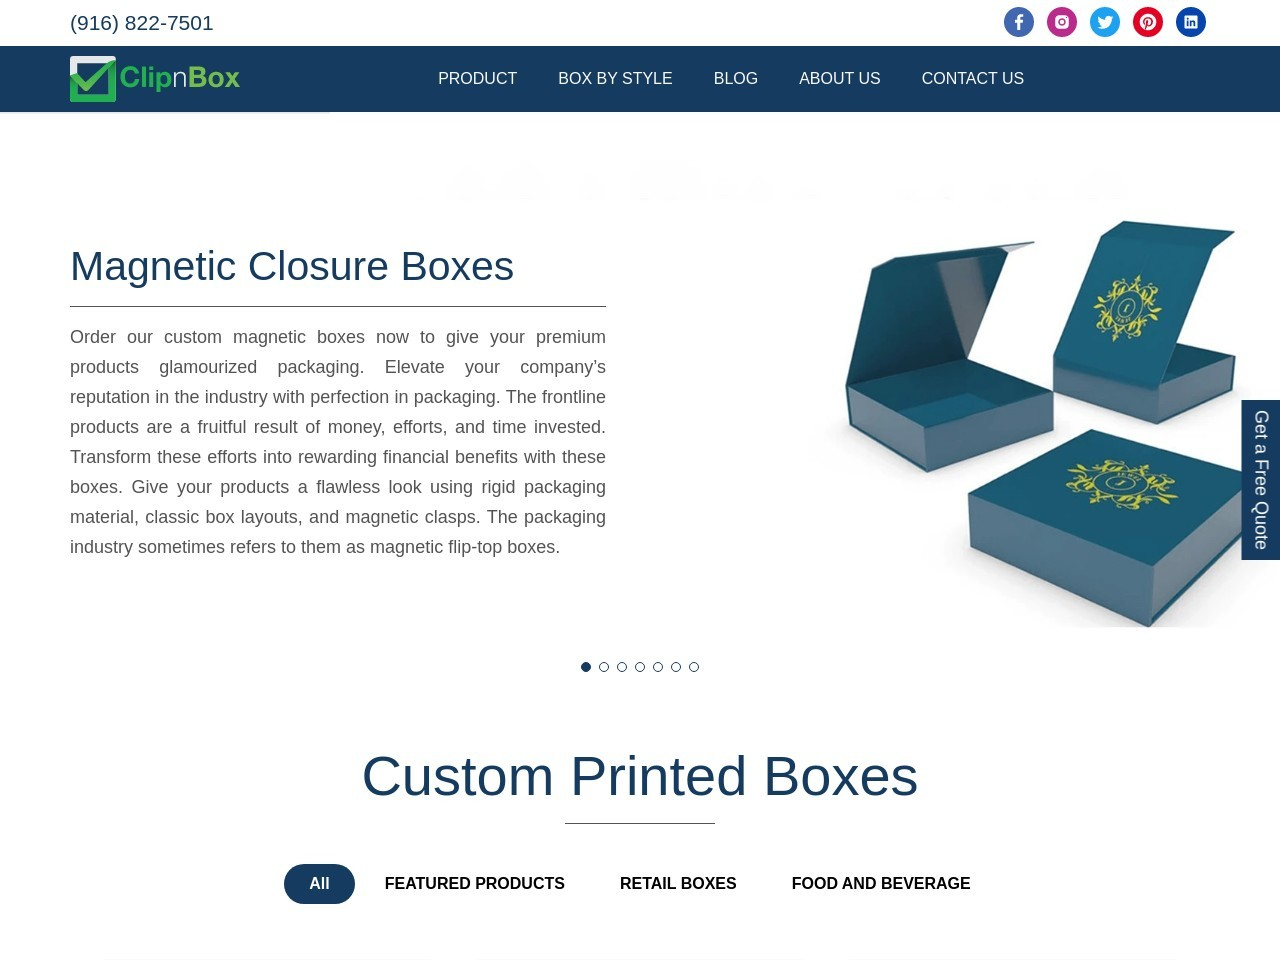 Custom rigid boxes 'unboxing' experience to win them all